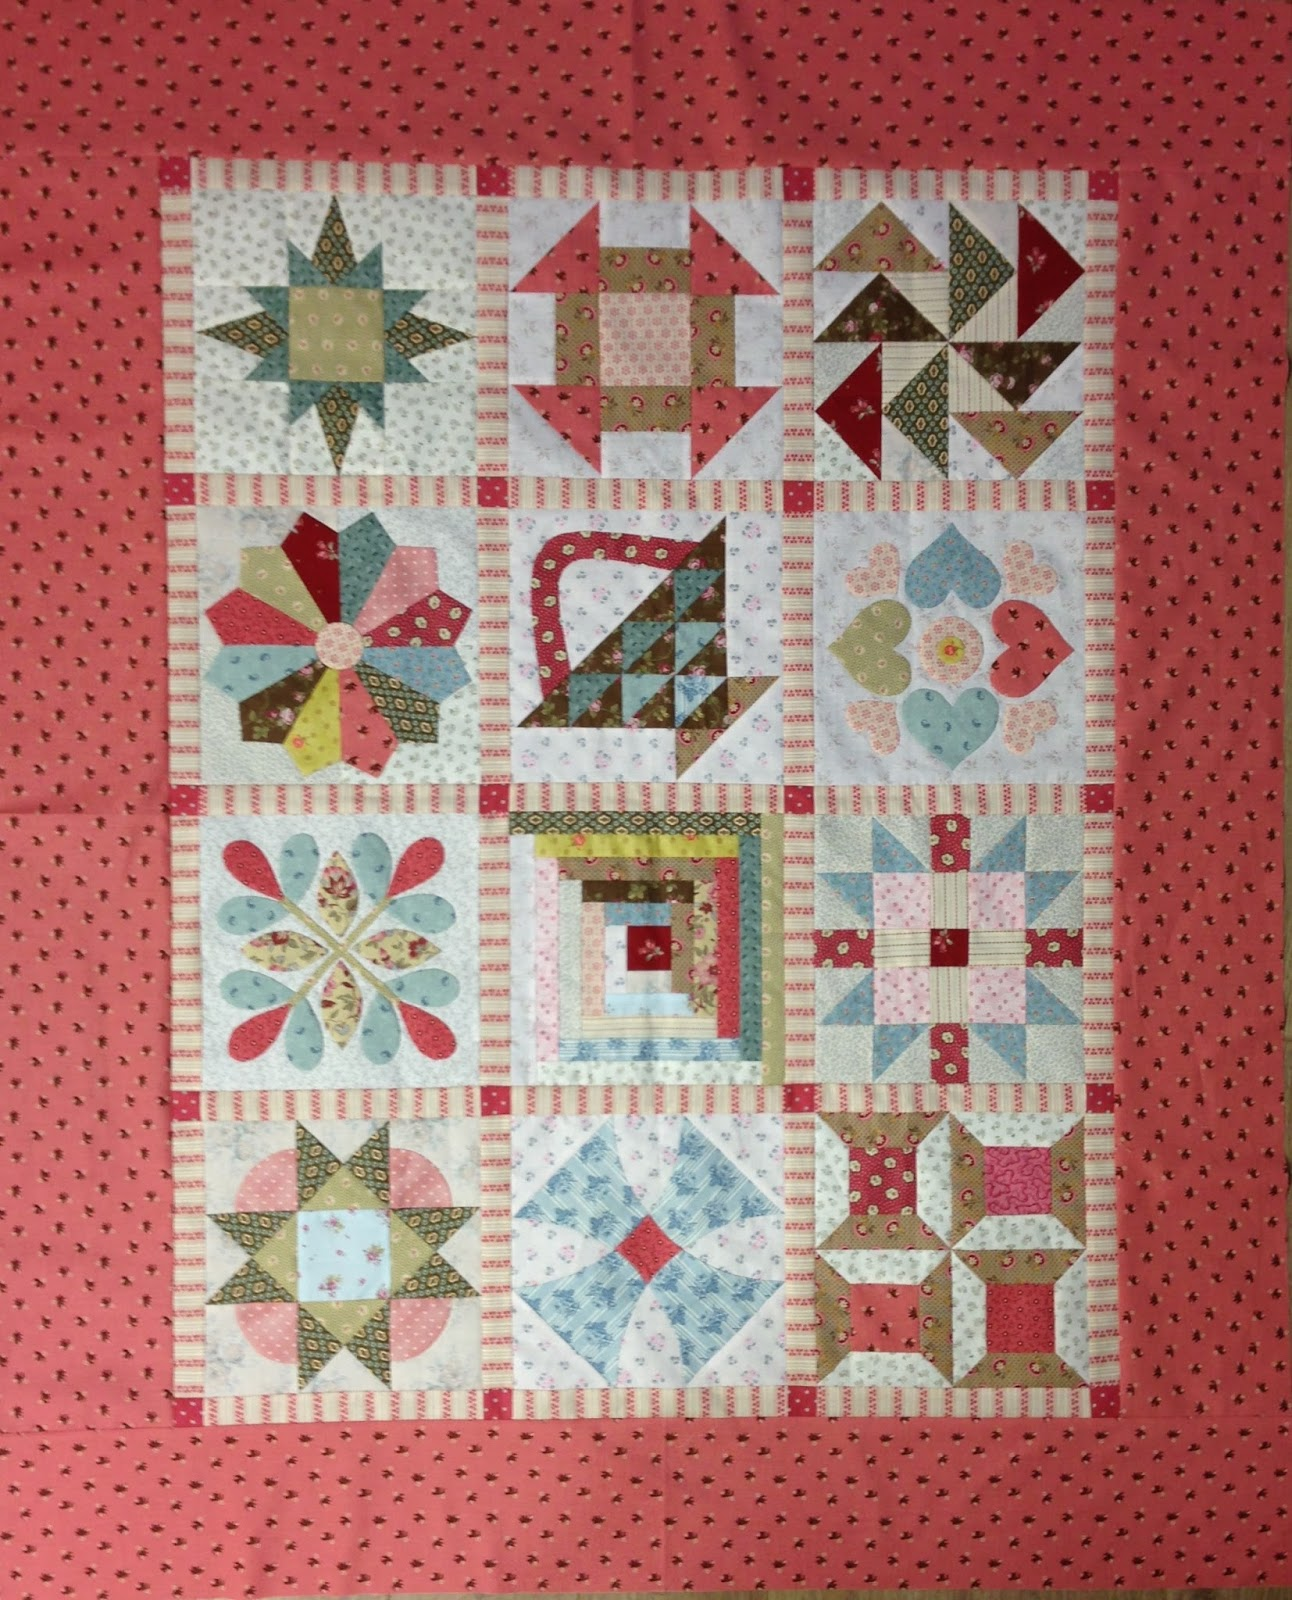 Basiscursus patchwork gegeven door Willy